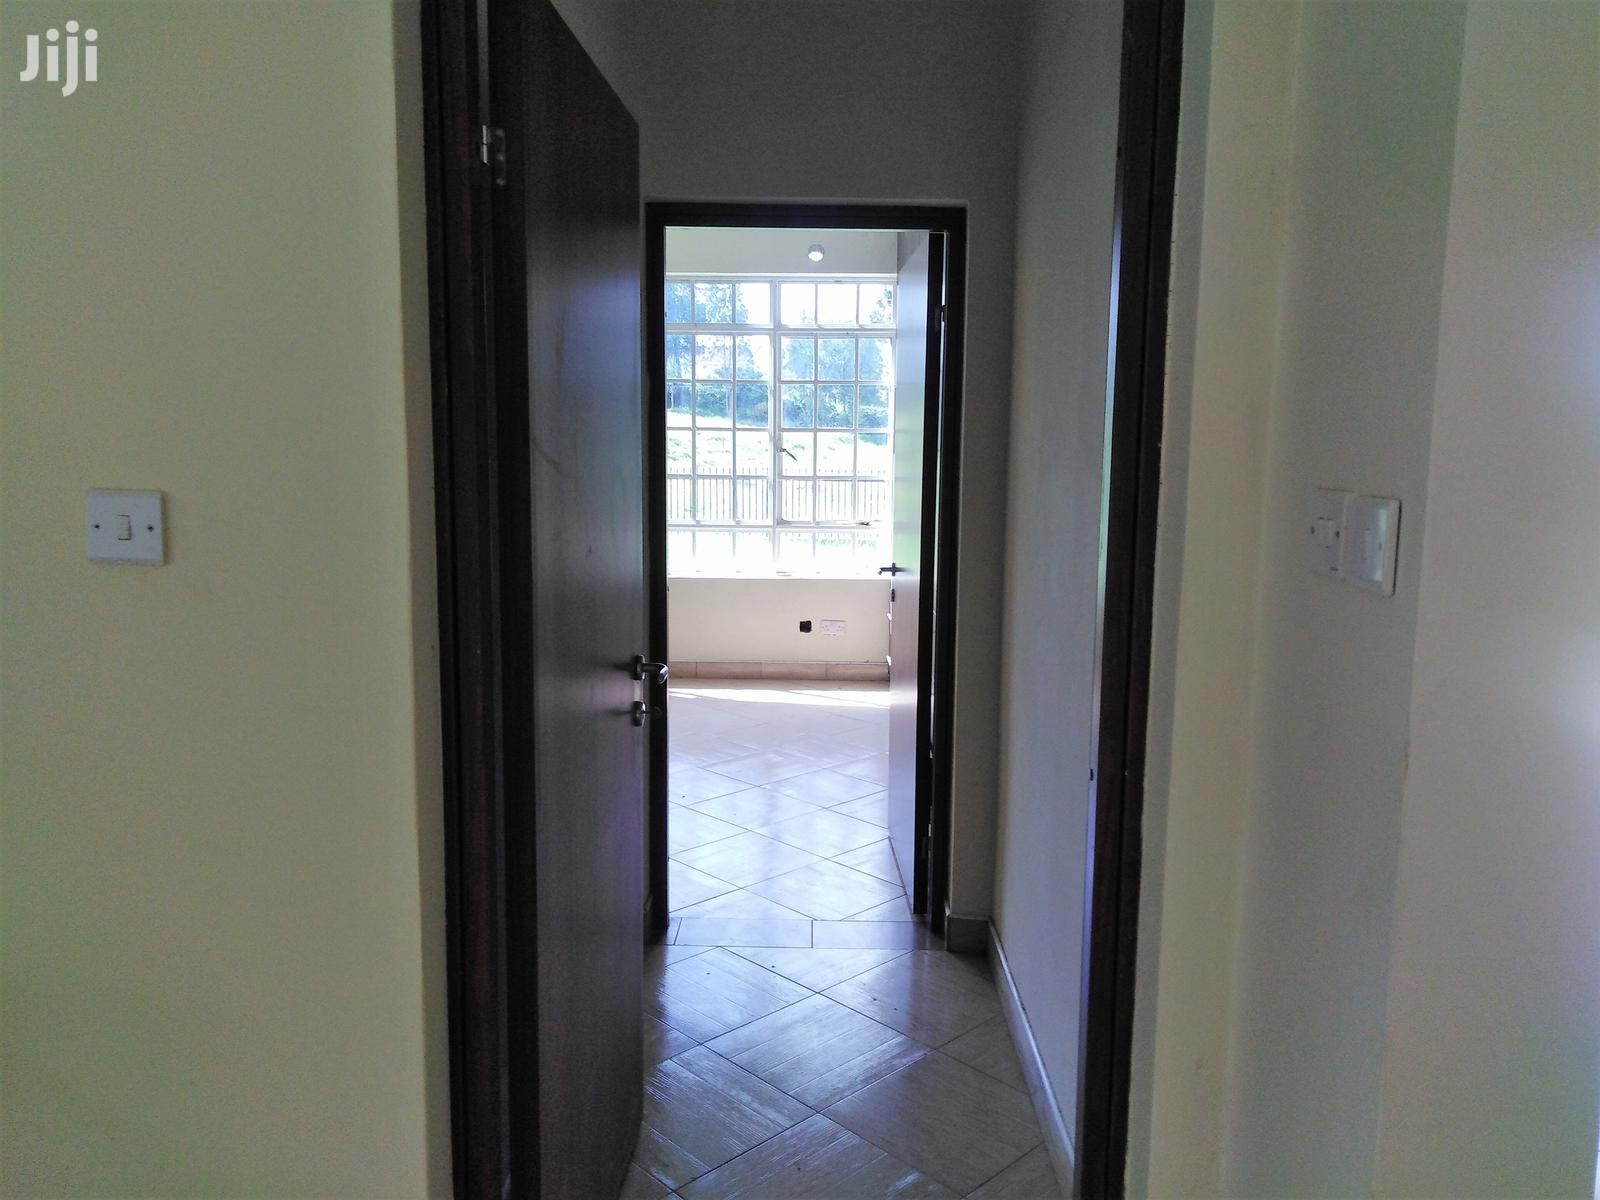 Three Bedrooms Bungalow On Sale At The Foot Of Ngong Hills   Houses & Apartments For Sale for sale in Ngong, Kajiado, Kenya